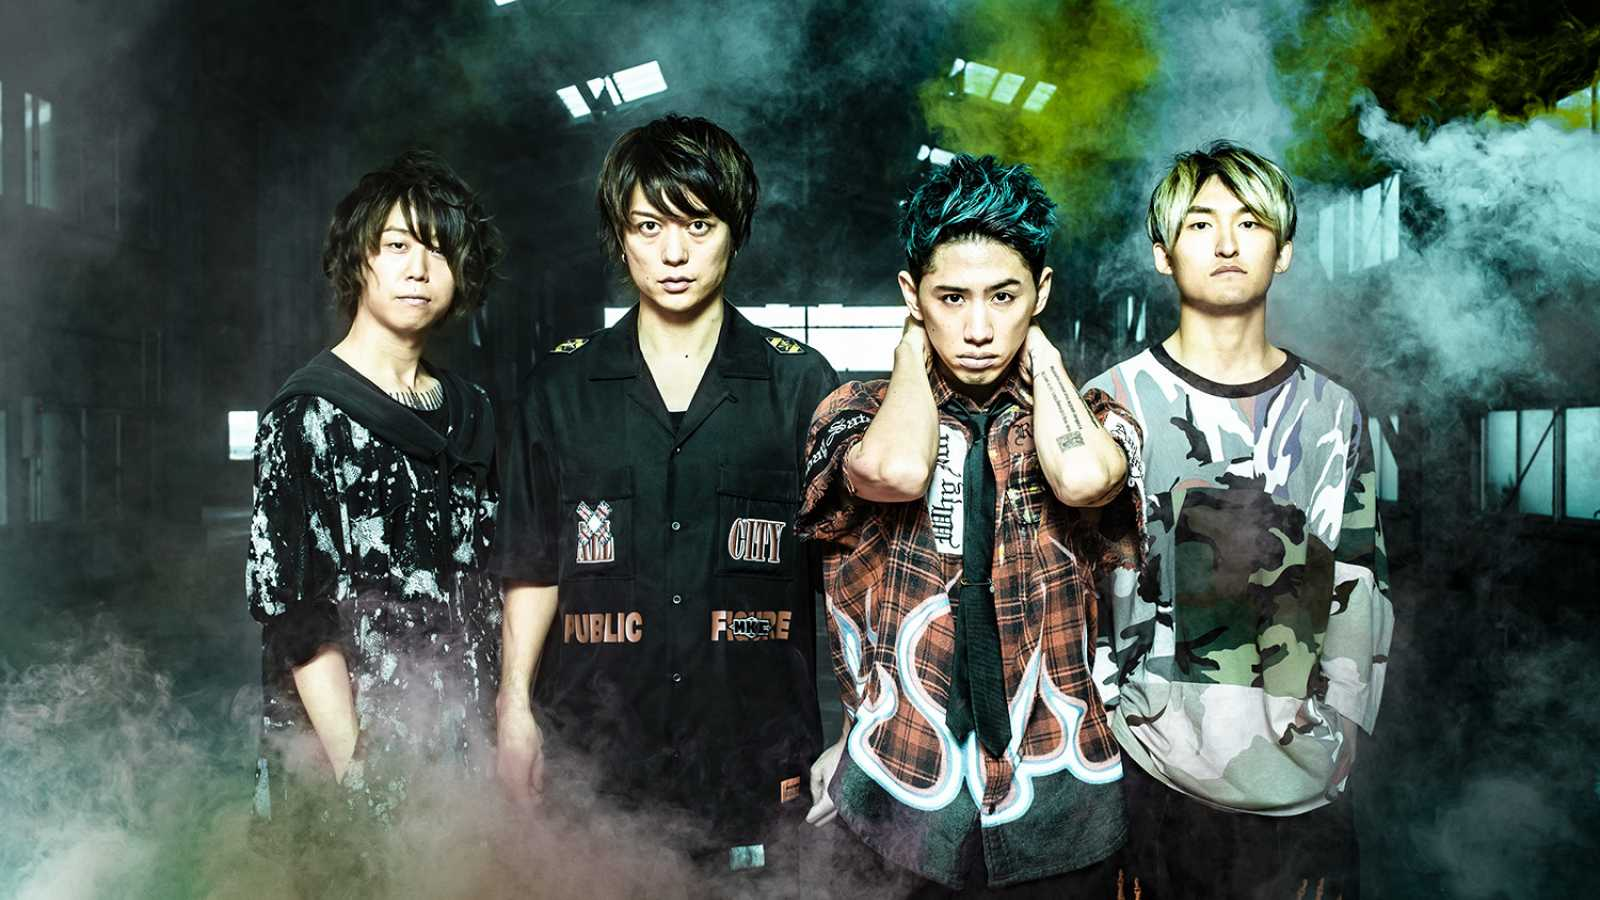 ONE OK ROCK to Stream Full Past Concerts on YouTube © AMUSE INC. All rights reserved.